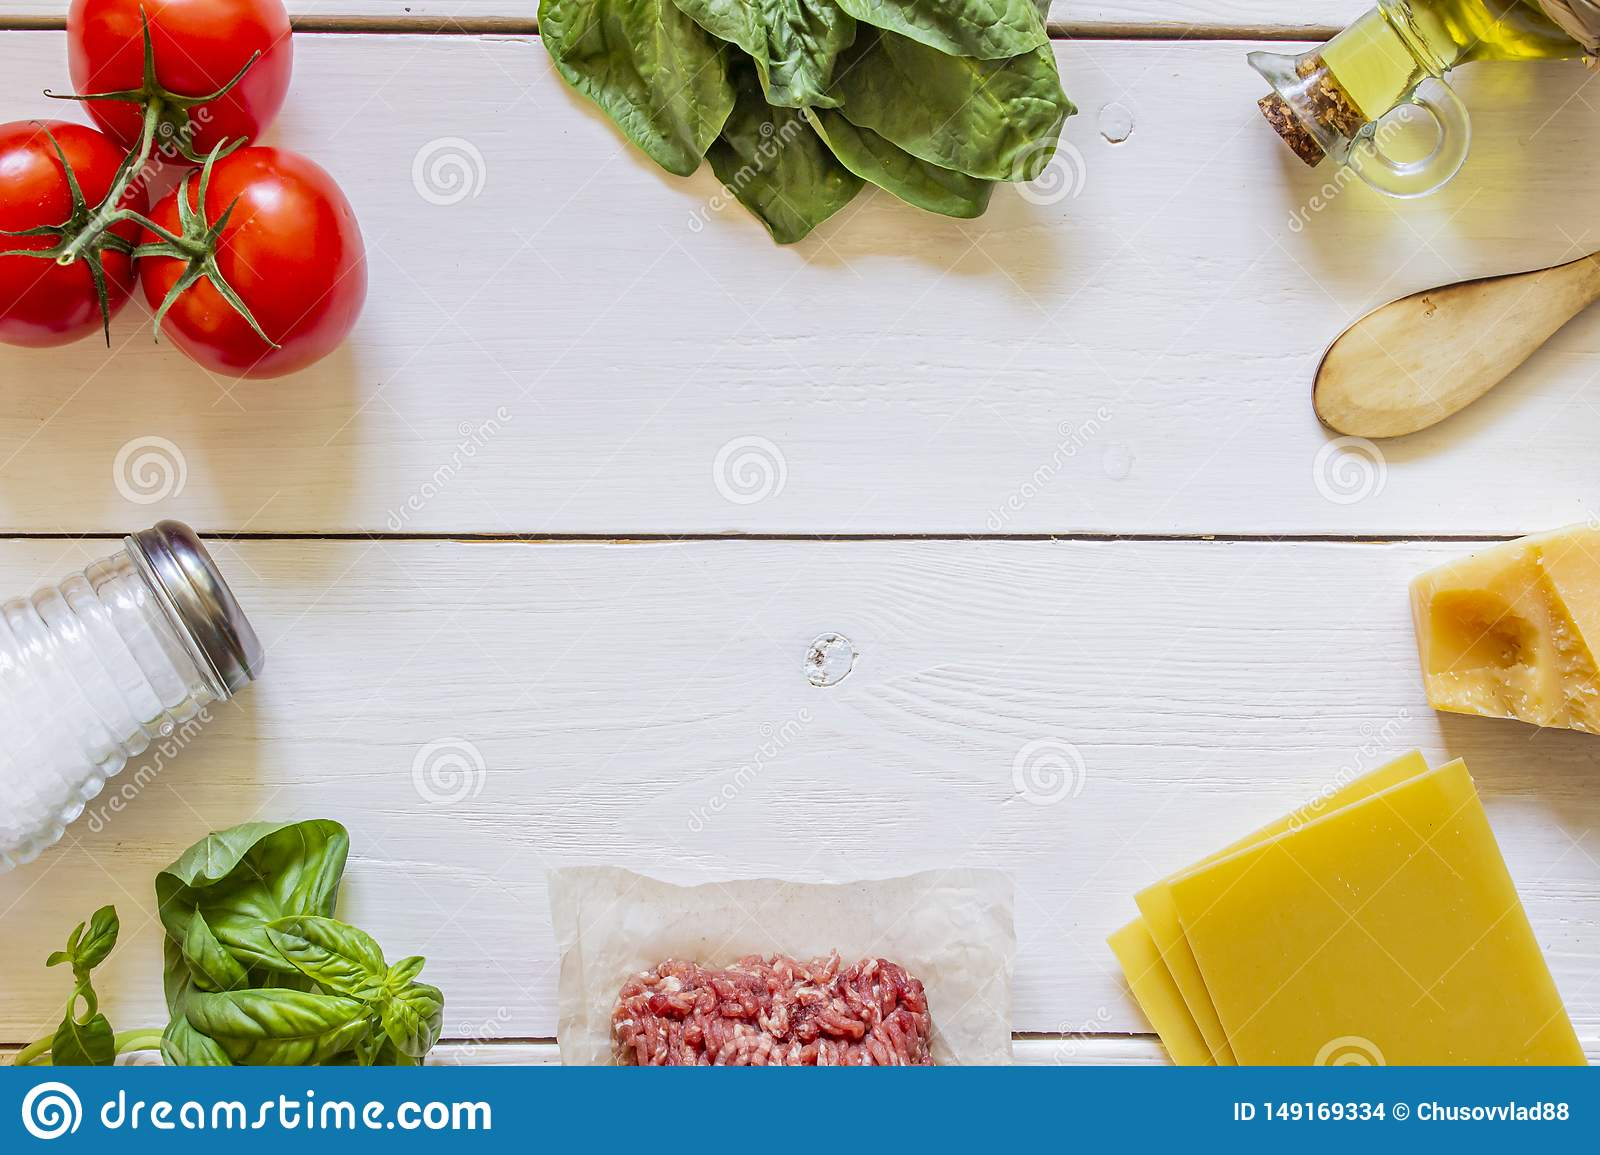 Lasagna, tomatoes, minced meat and other ingredients. White wooden background. Italian cuisine